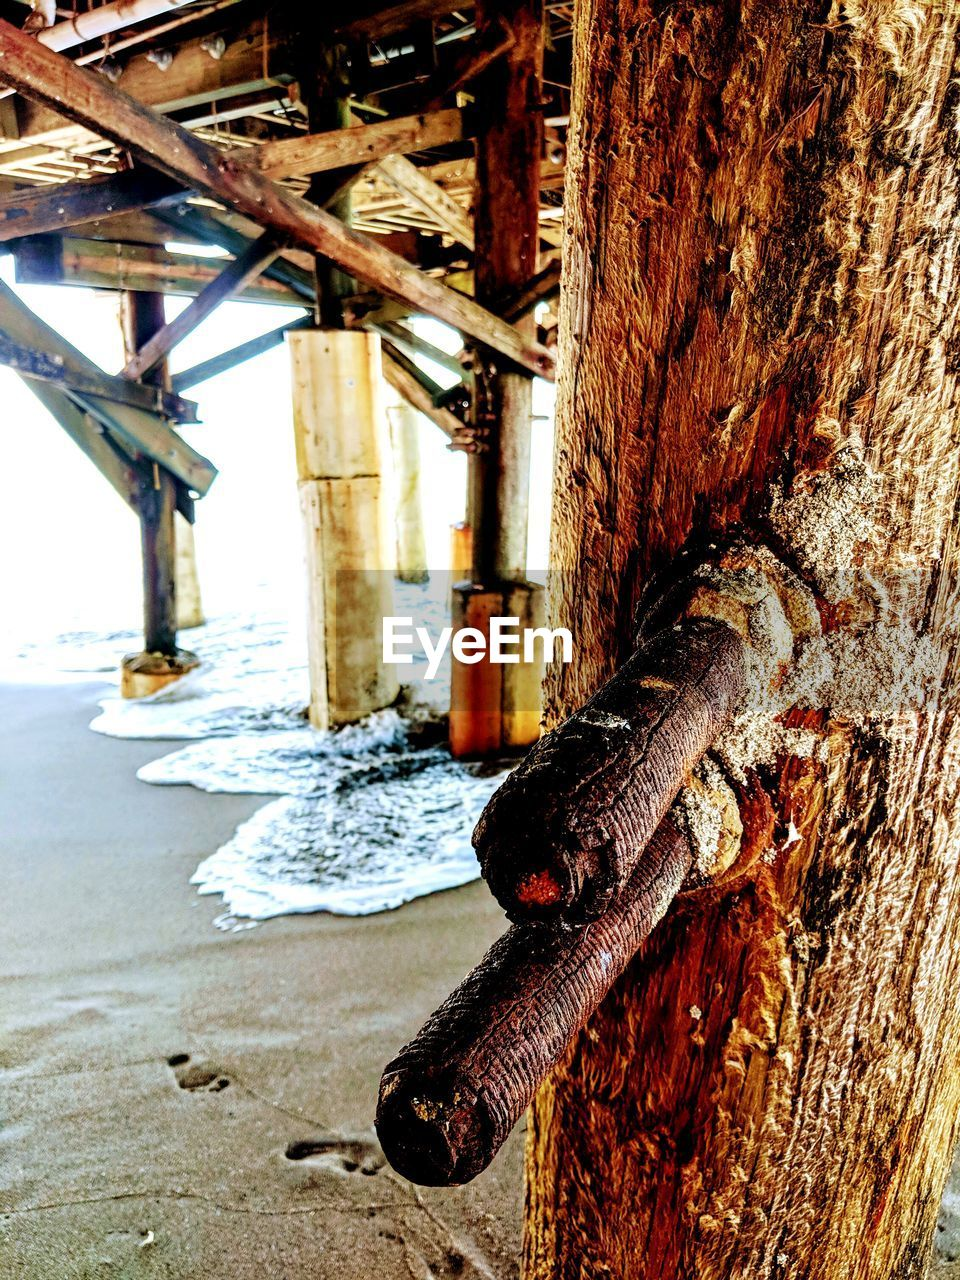 metal, rusty, wood - material, no people, day, close-up, focus on foreground, old, tree trunk, outdoors, trunk, animal, textured, animal wildlife, animal themes, architectural column, tree, nature, one animal, wood, wooden post